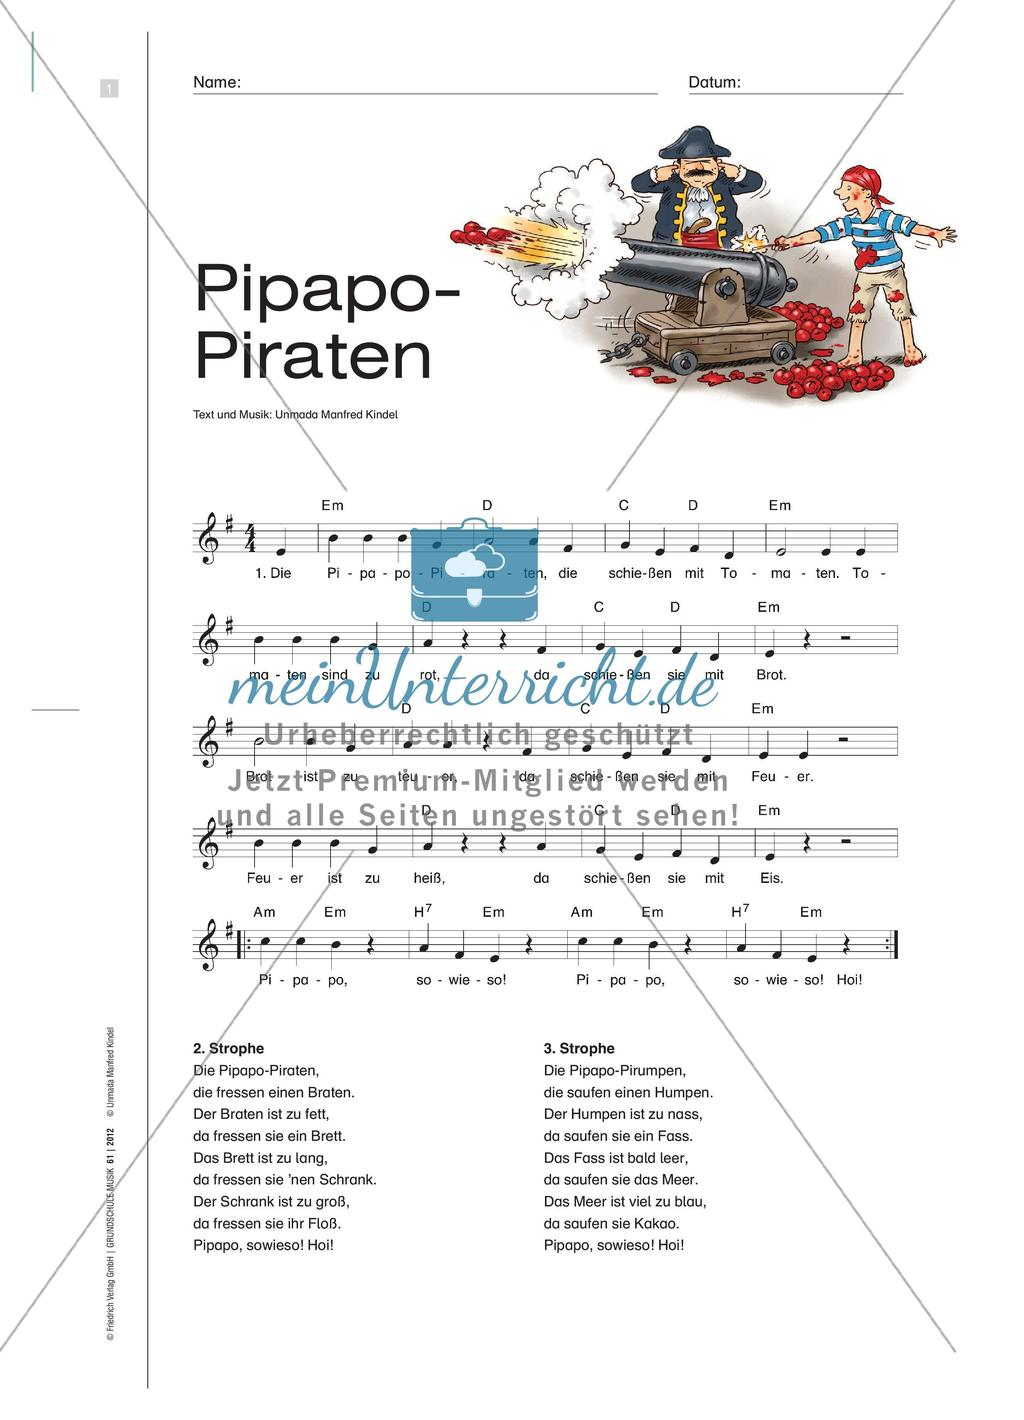 Die Piraten Lied